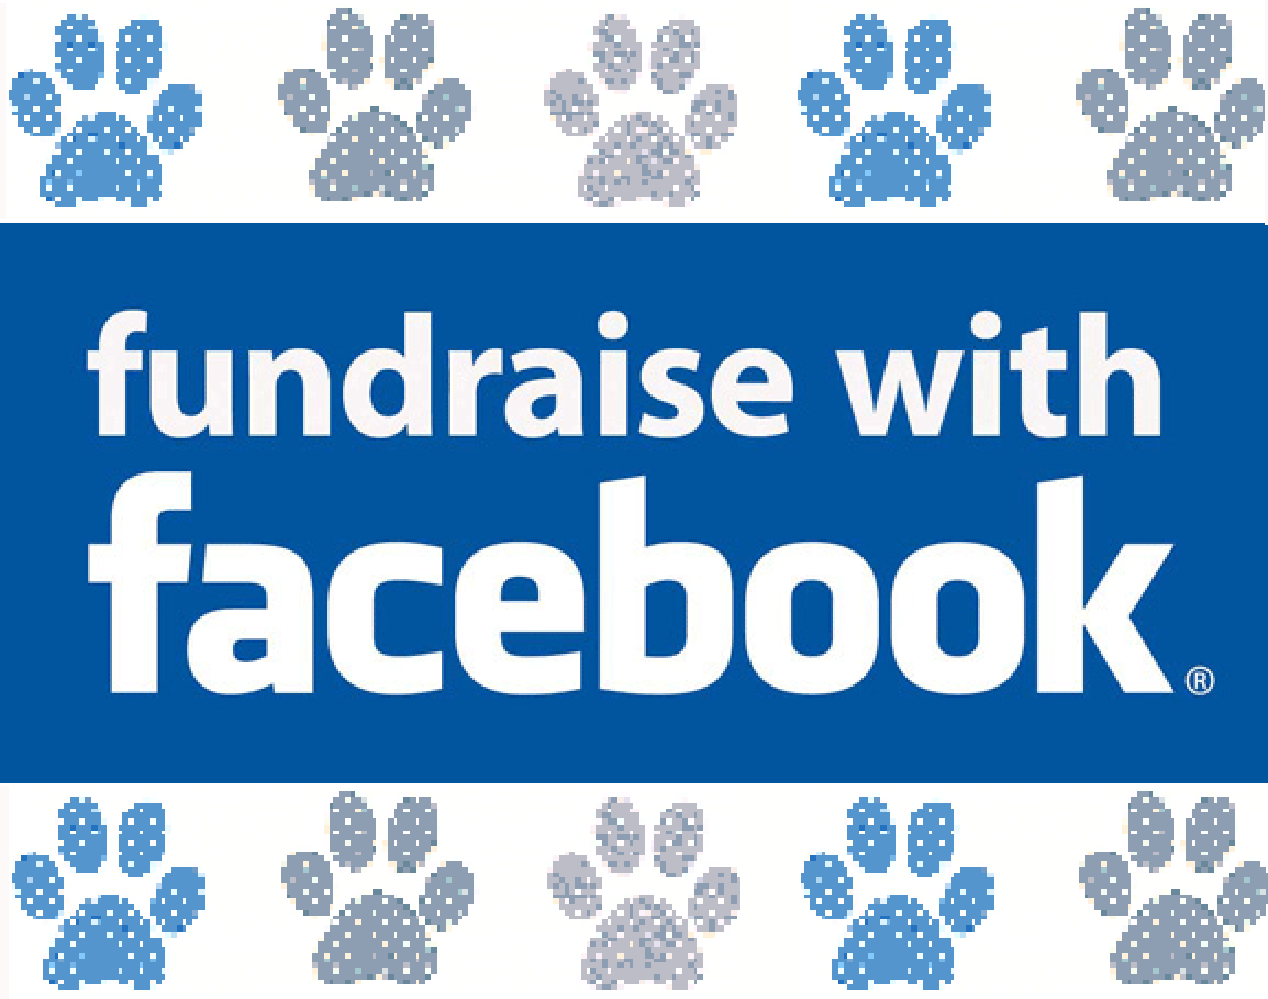 fundraise-with-facebook